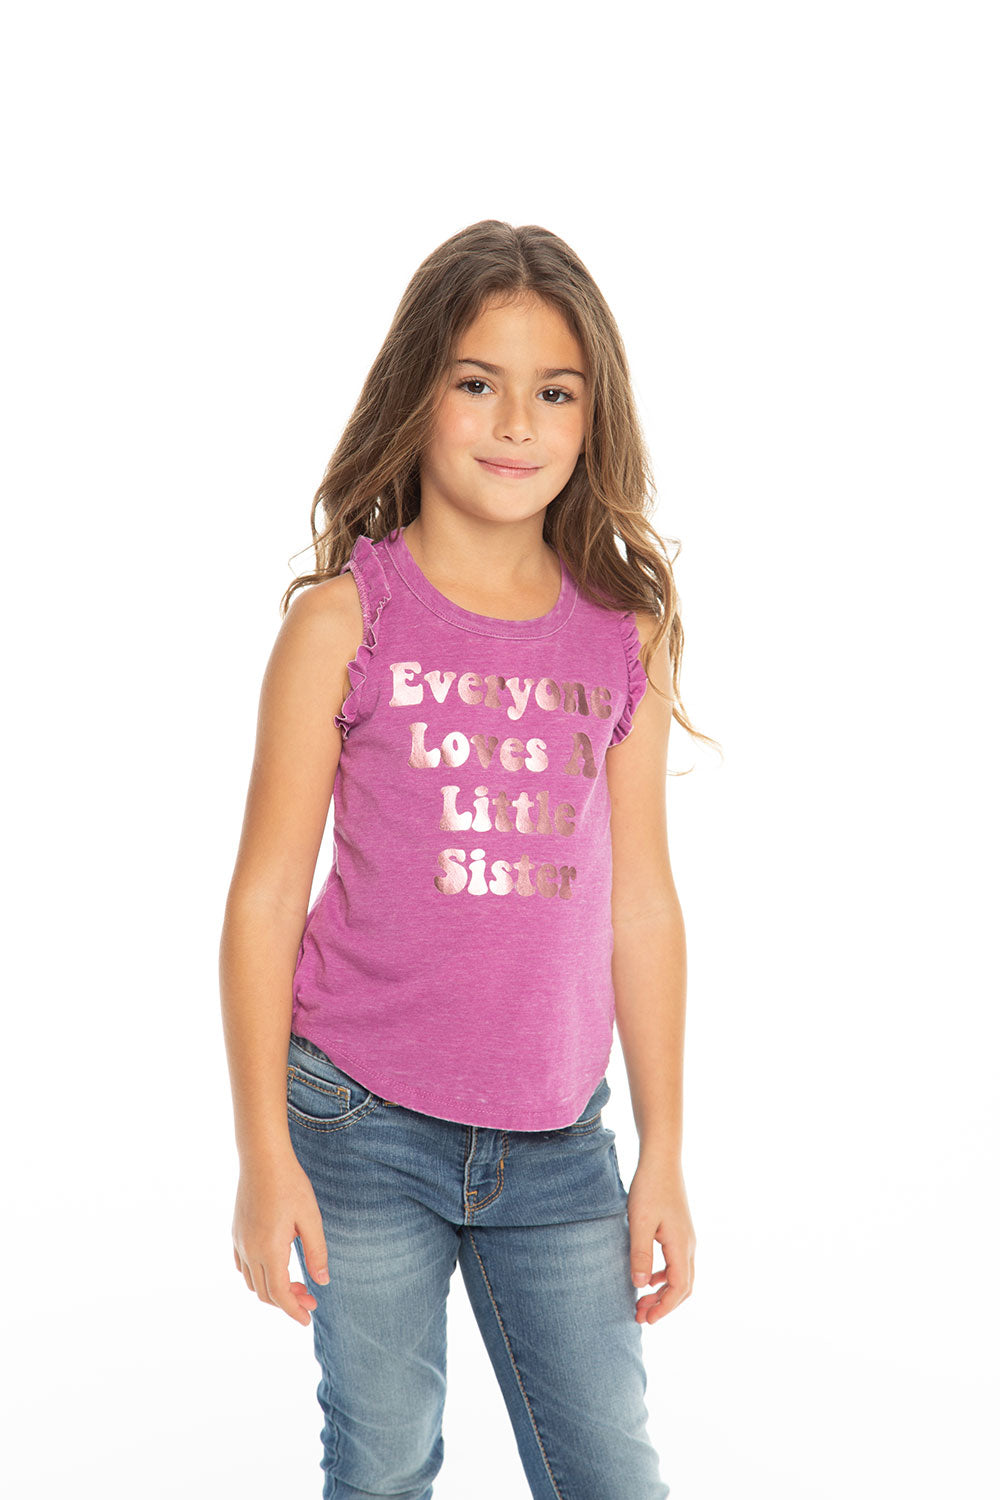 Little Sister Love Girls chaserbrand4.myshopify.com